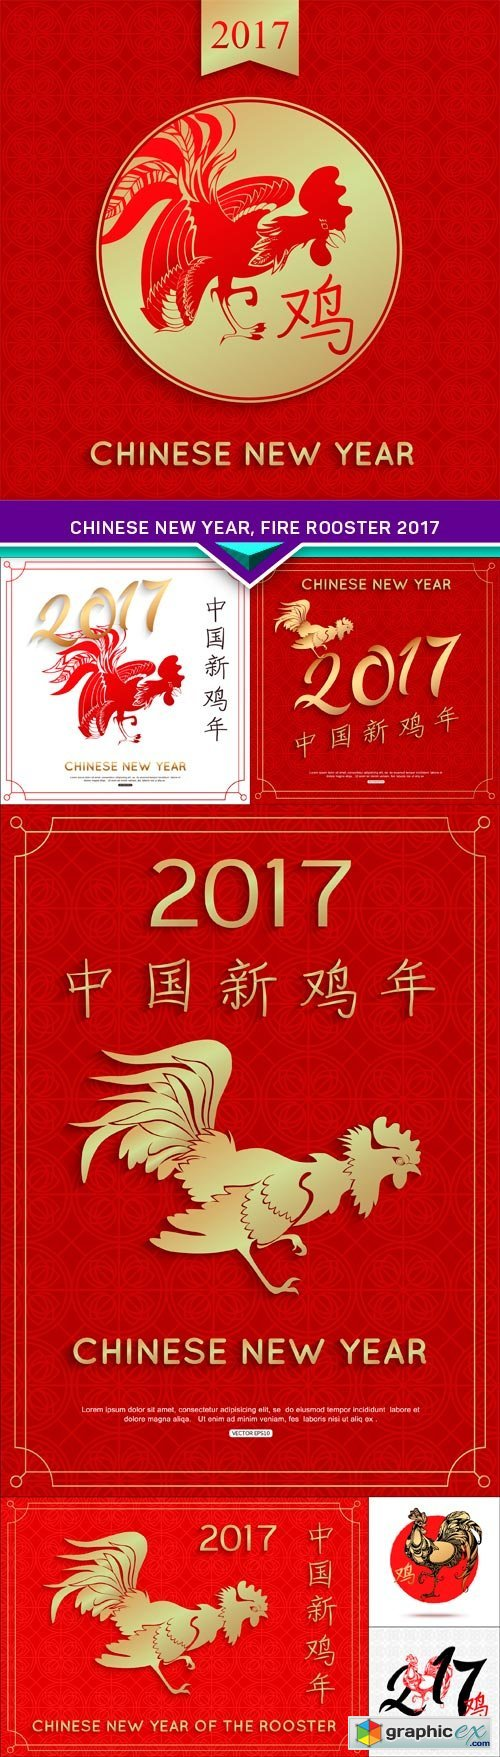 Chinese New Year, Fire Rooster 2017 7X EPS